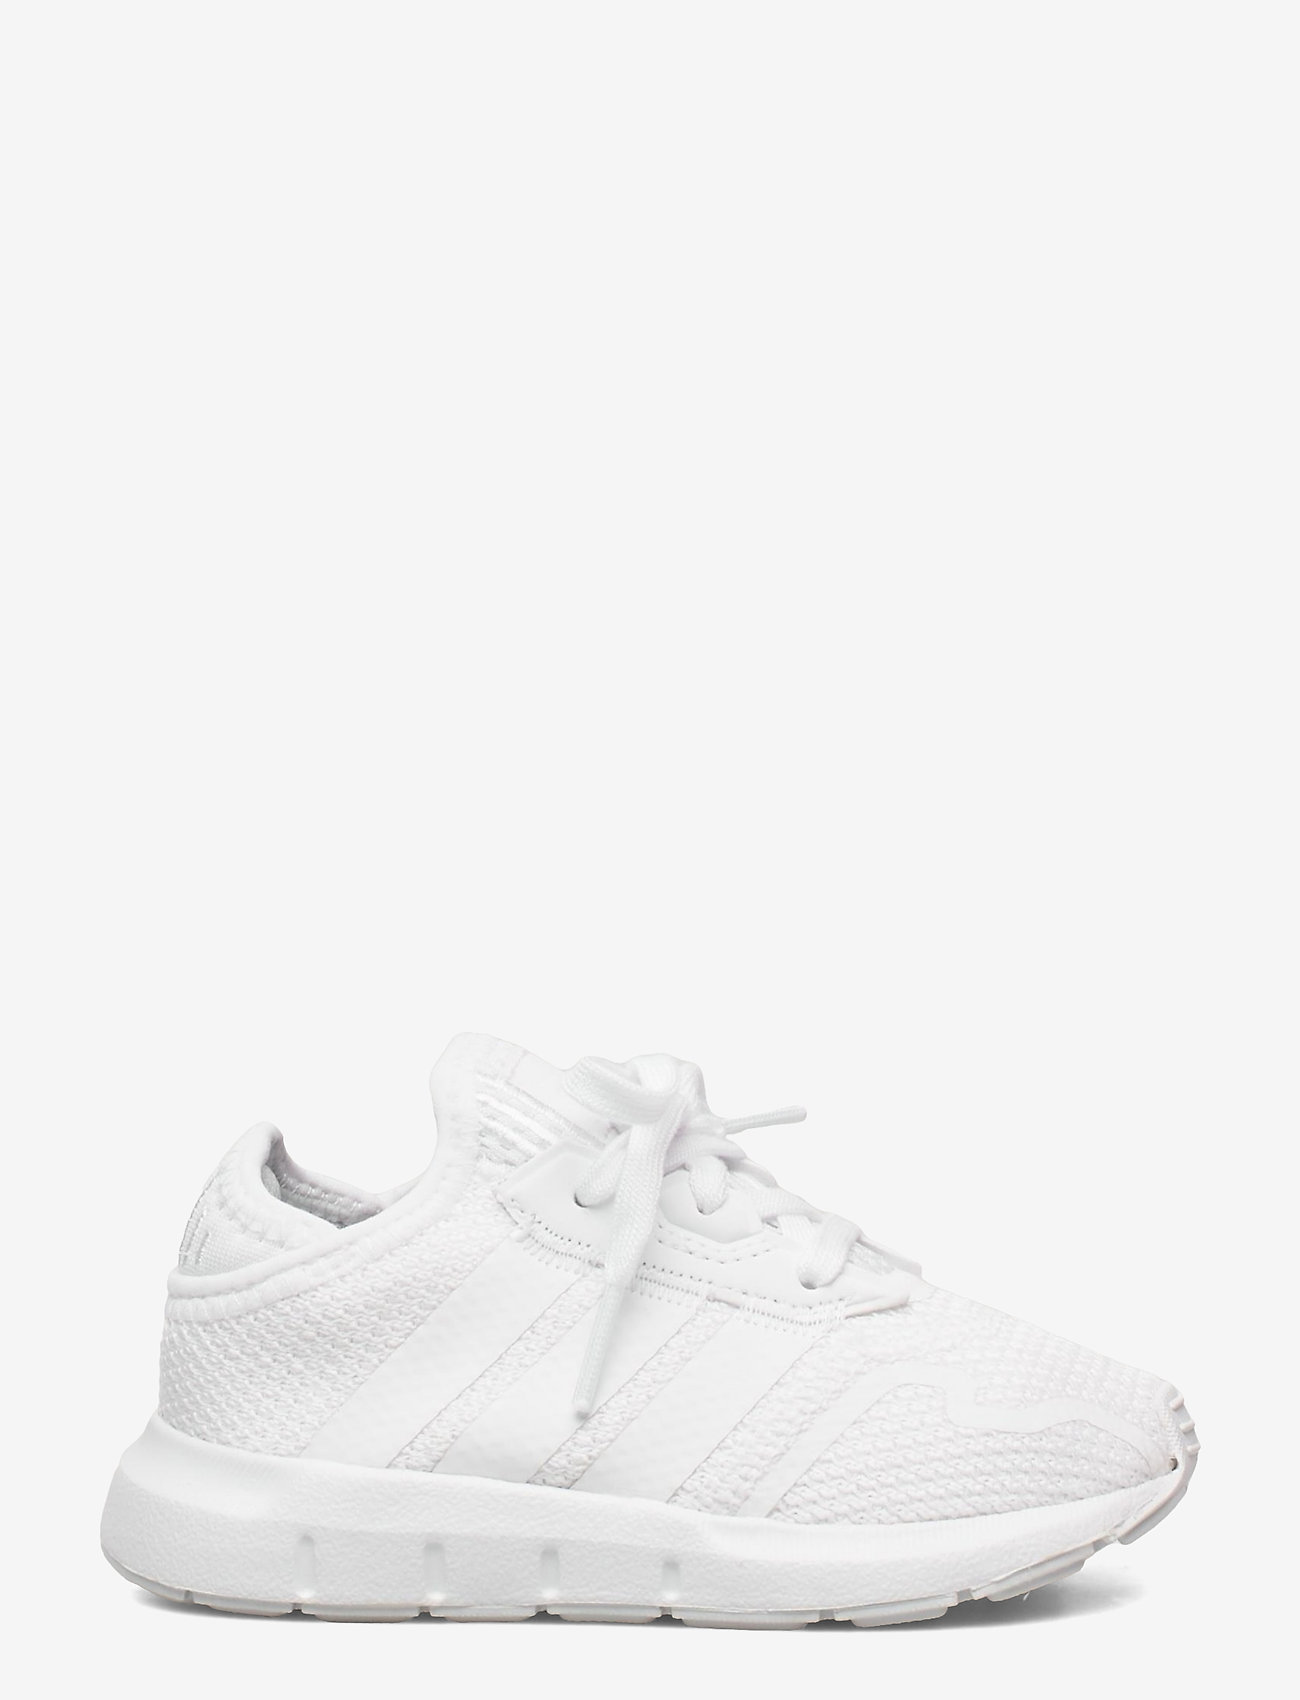 adidas Originals - SWIFT RUN X I - niedriger schnitt - ftwwht/ftwwht/ftwwht - 1